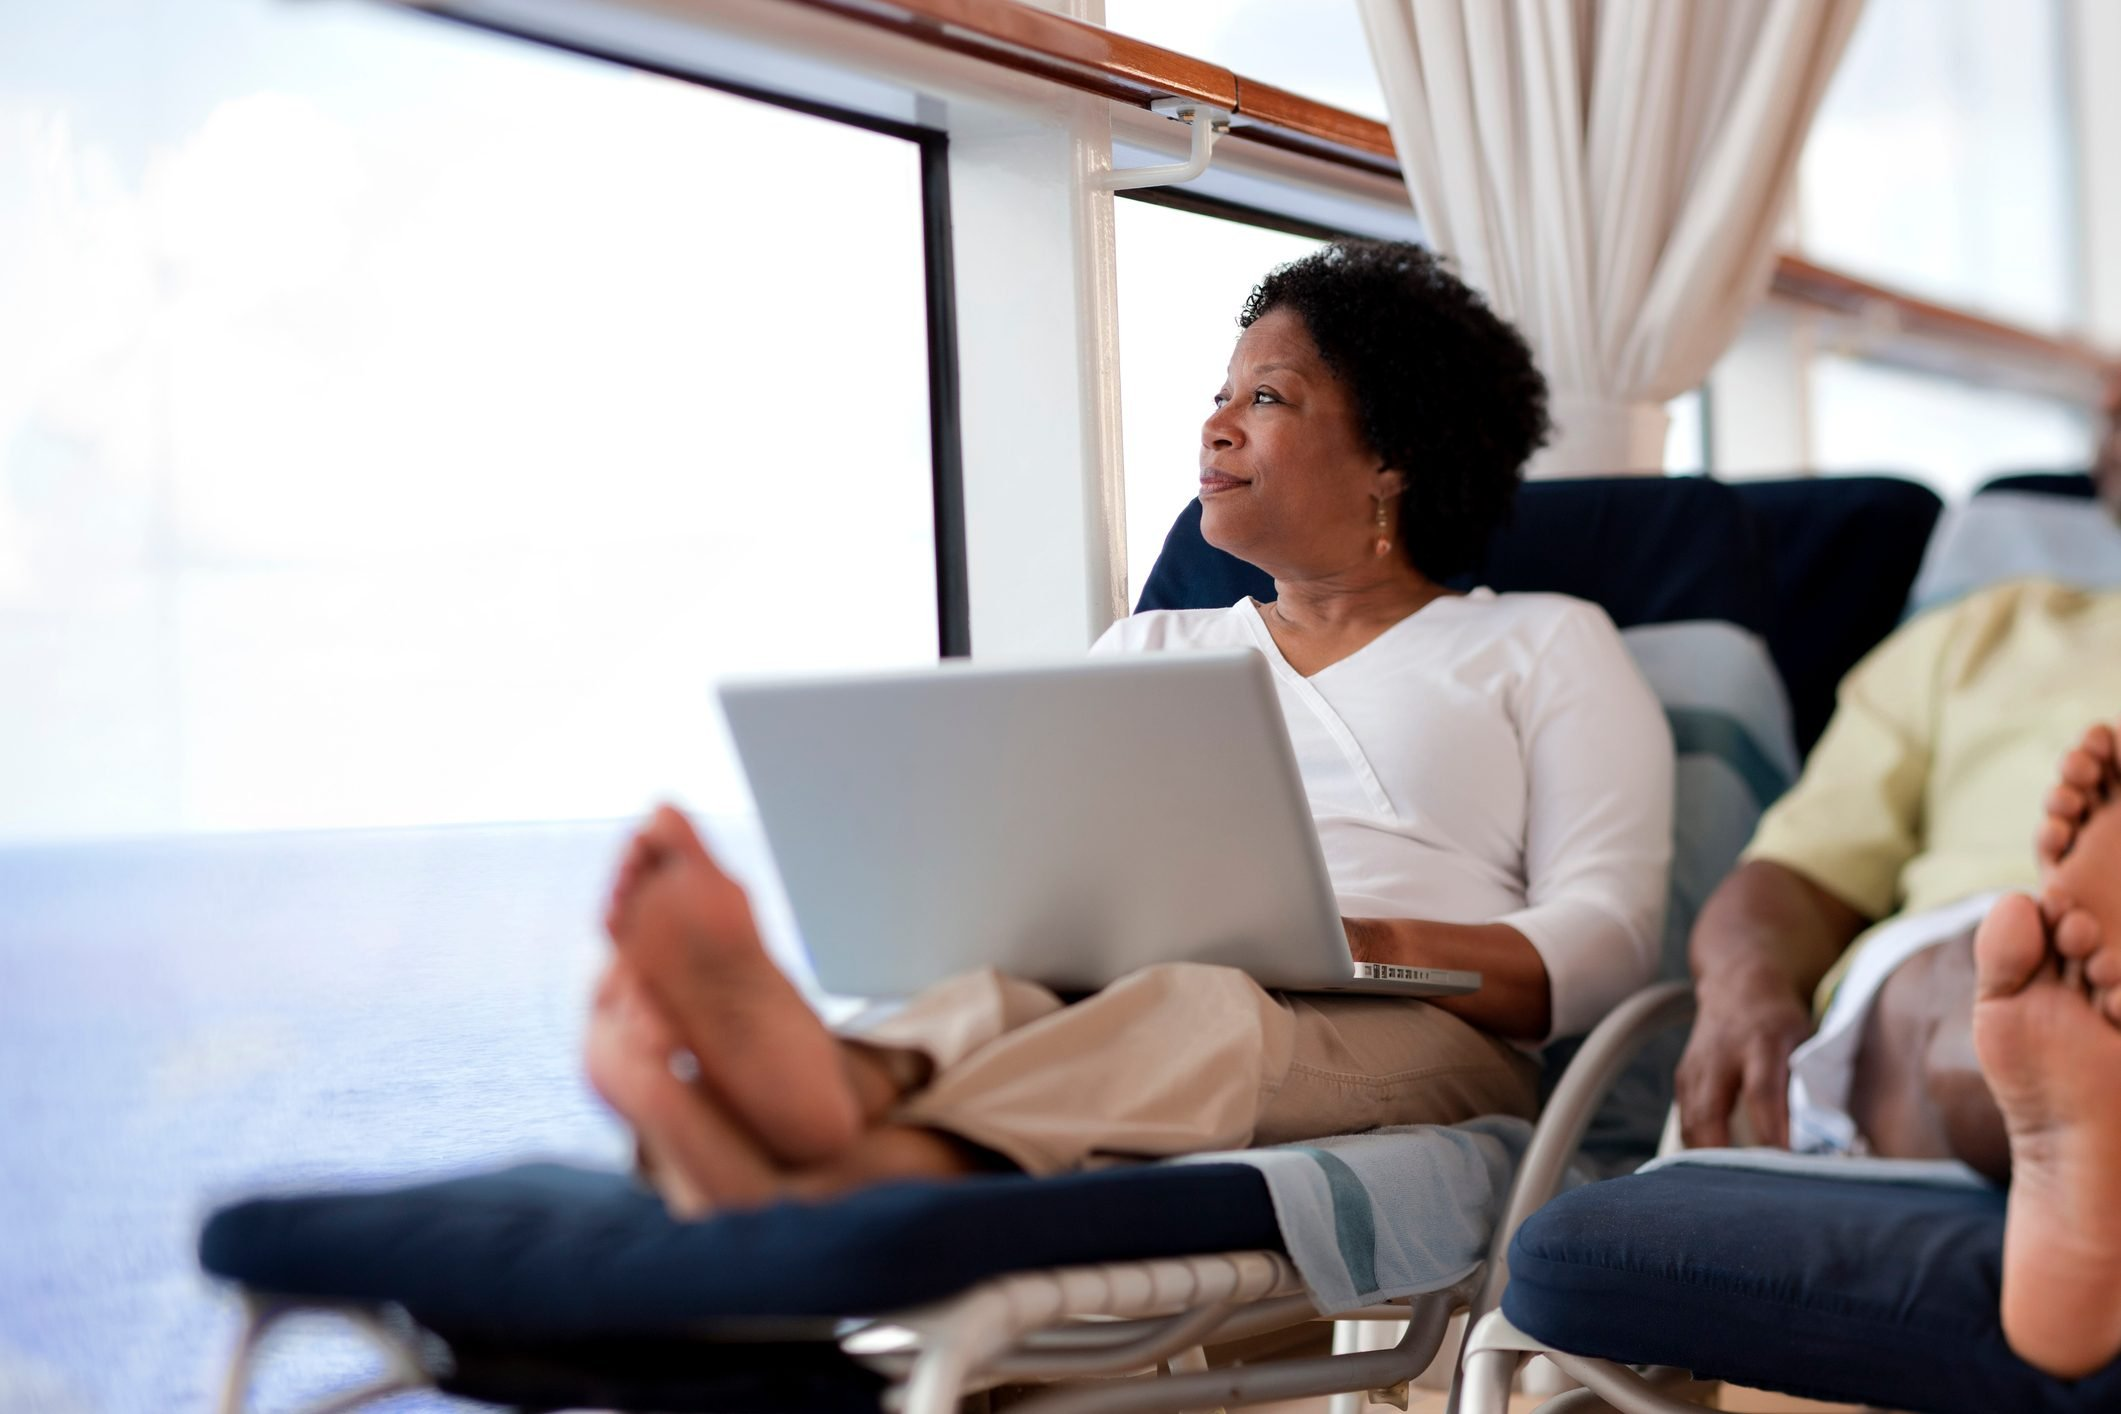 Woman on lounge chair with laptop